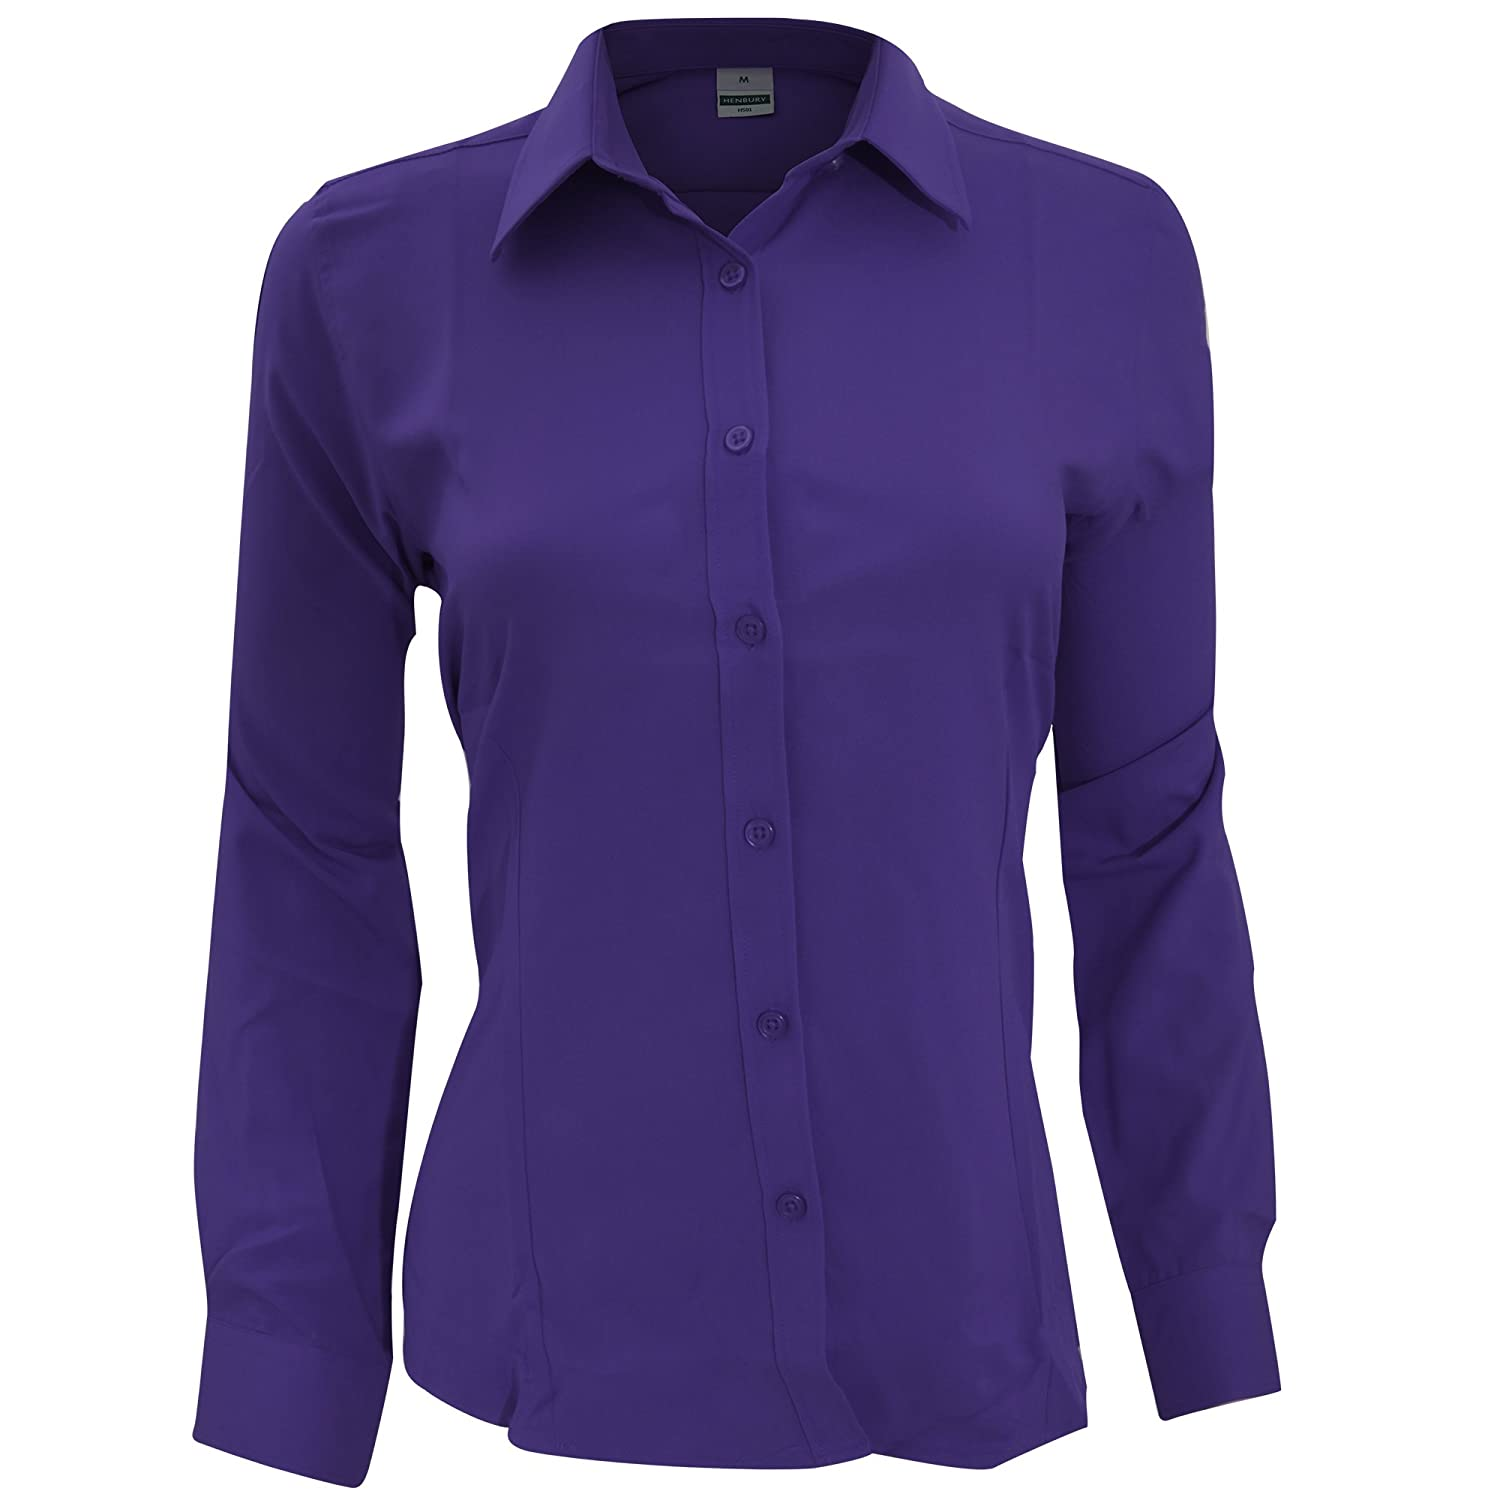 Amazon.com: Henbury Womens/Ladies Wicking Anti-bacterial Long Sleeve Work  Shirt: Clothing